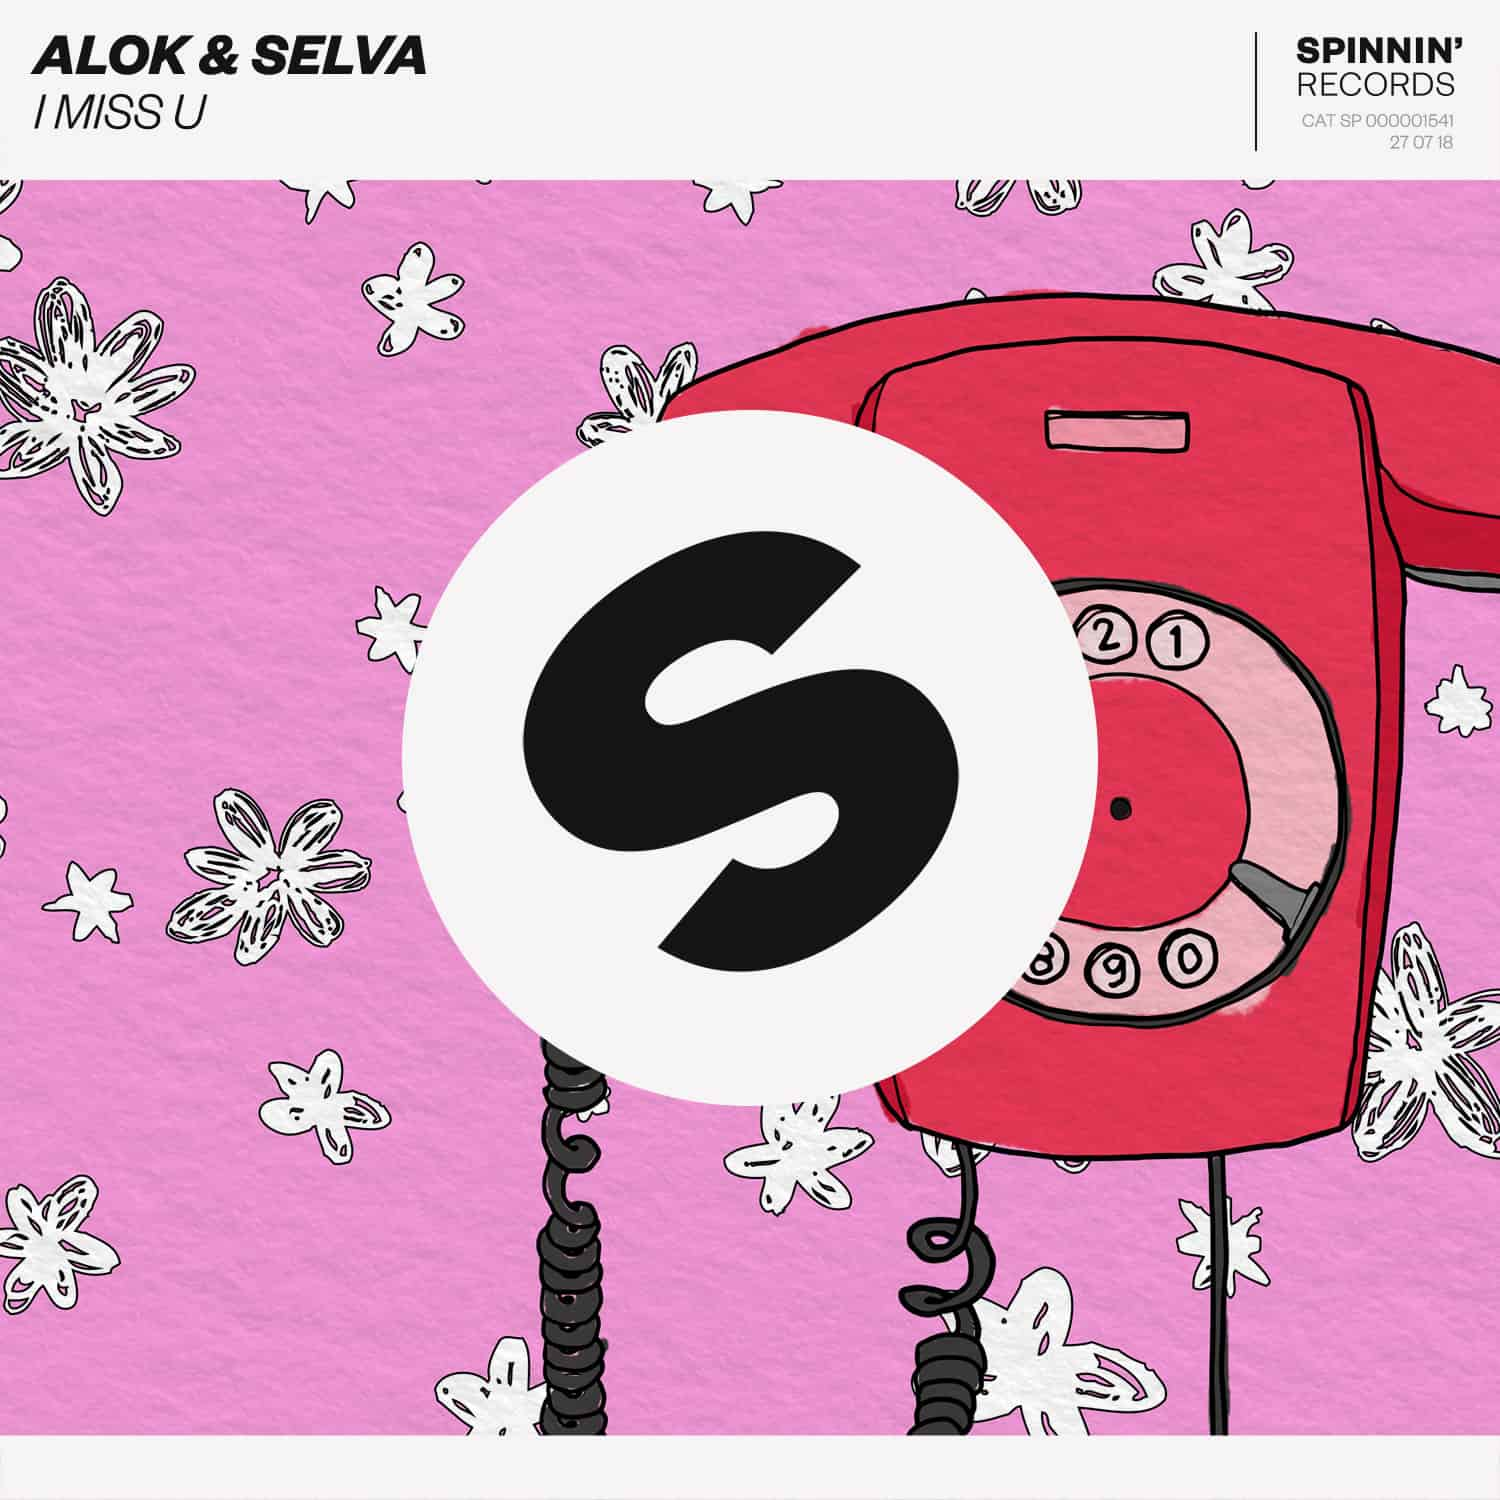 'I Miss U' by Alok & Selva Is Out Via Spinnin' Records